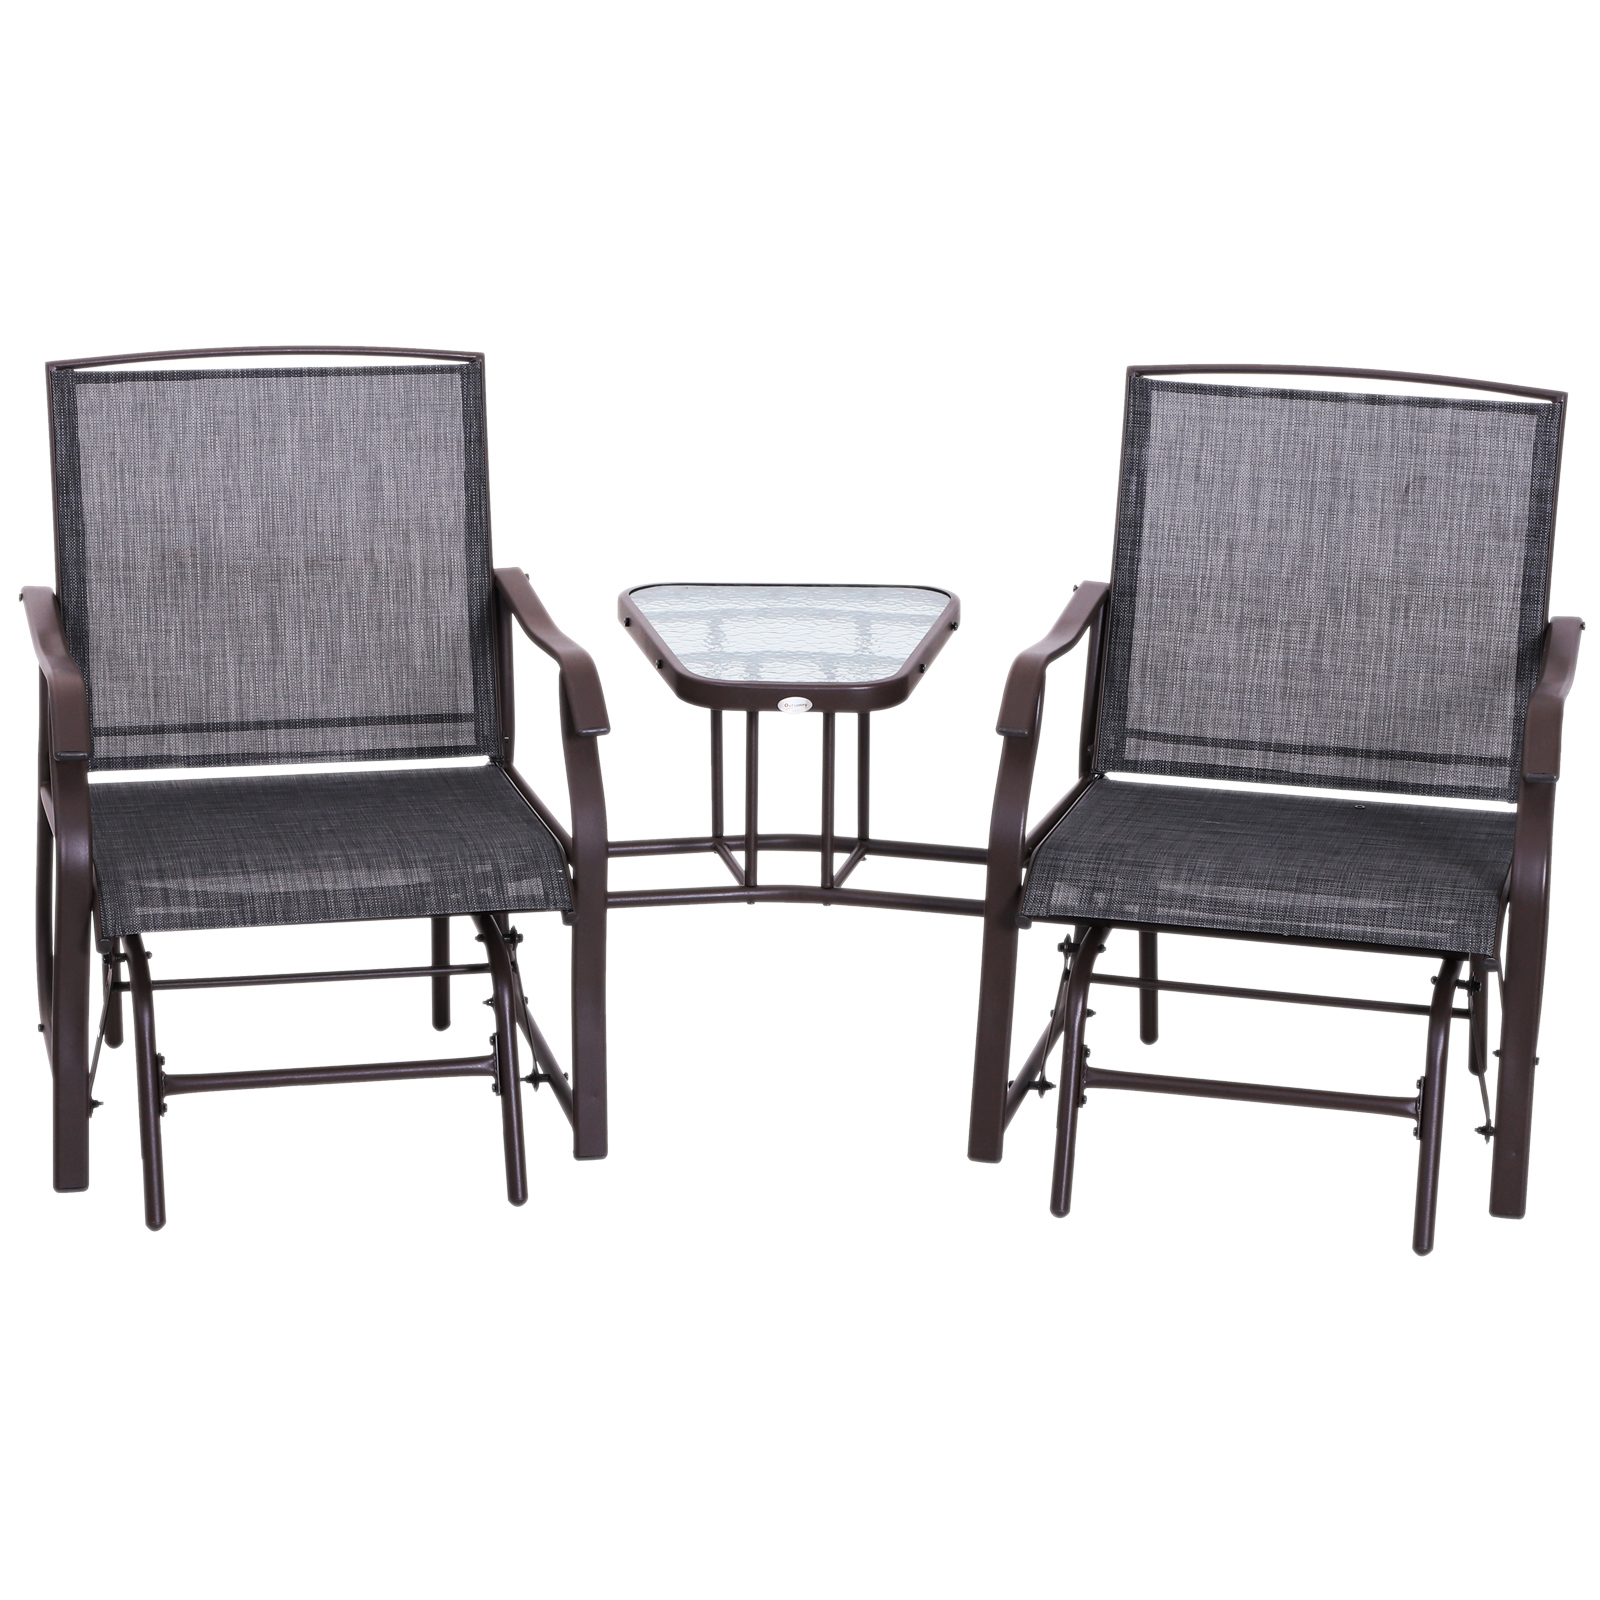 Patio Double Glider Chairs Garden Bench with Center Table ...